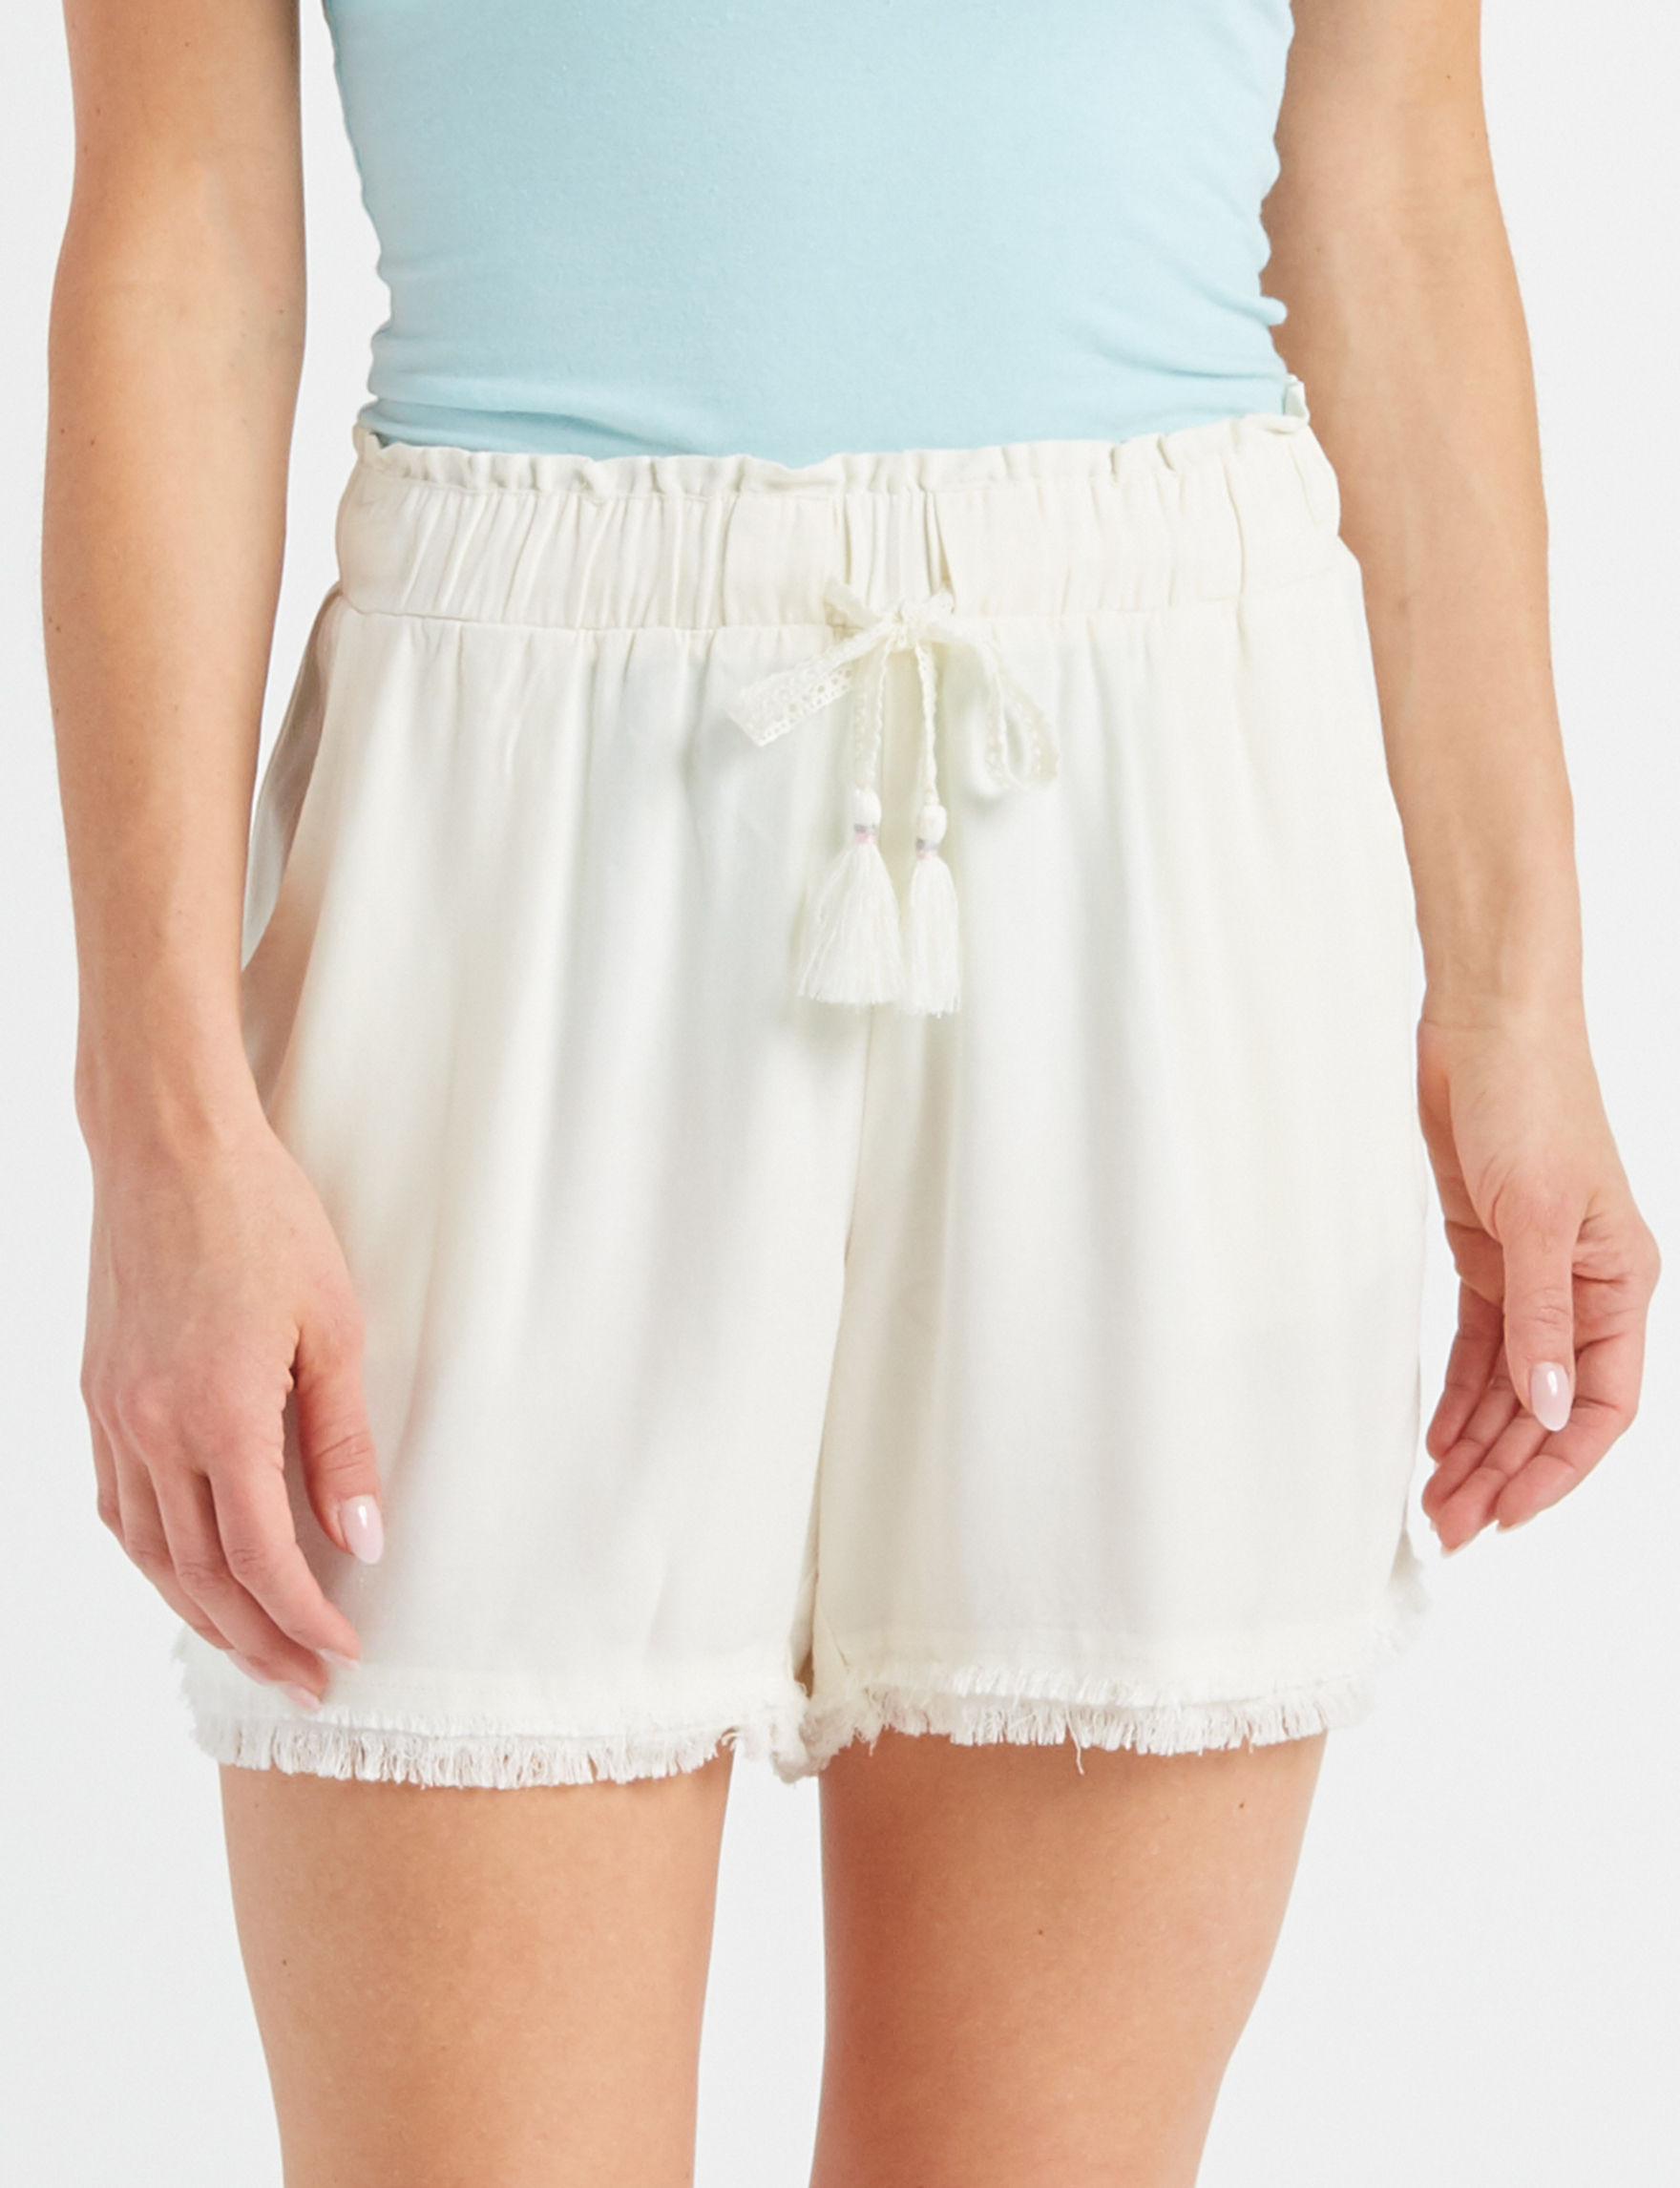 Signature Studio White Soft Shorts